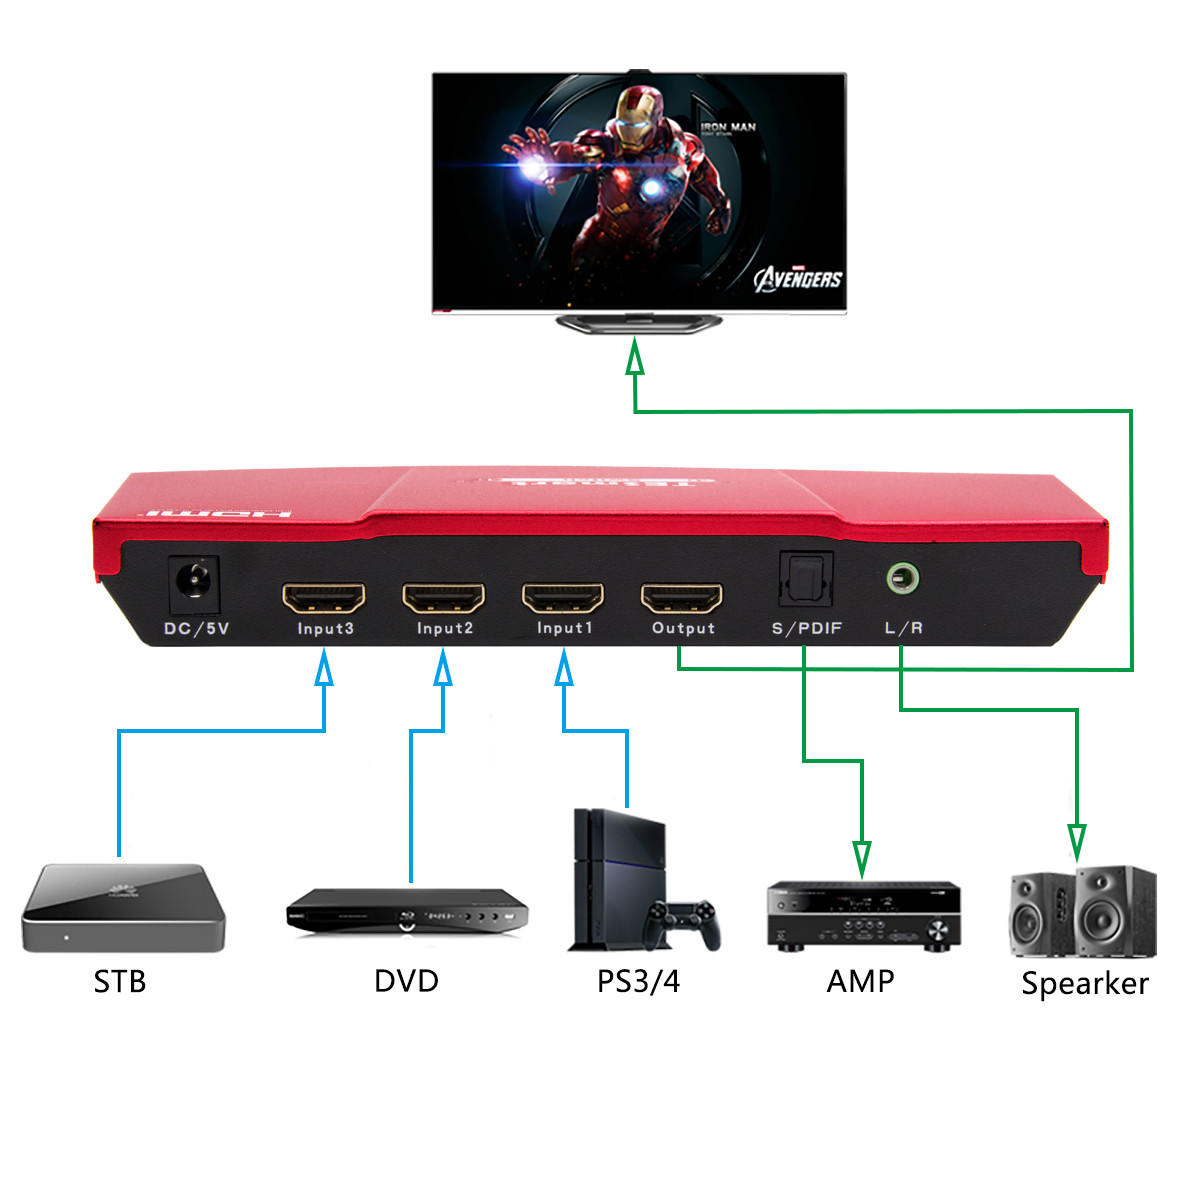 Red 3x1 HDMI Switch with audio out-2